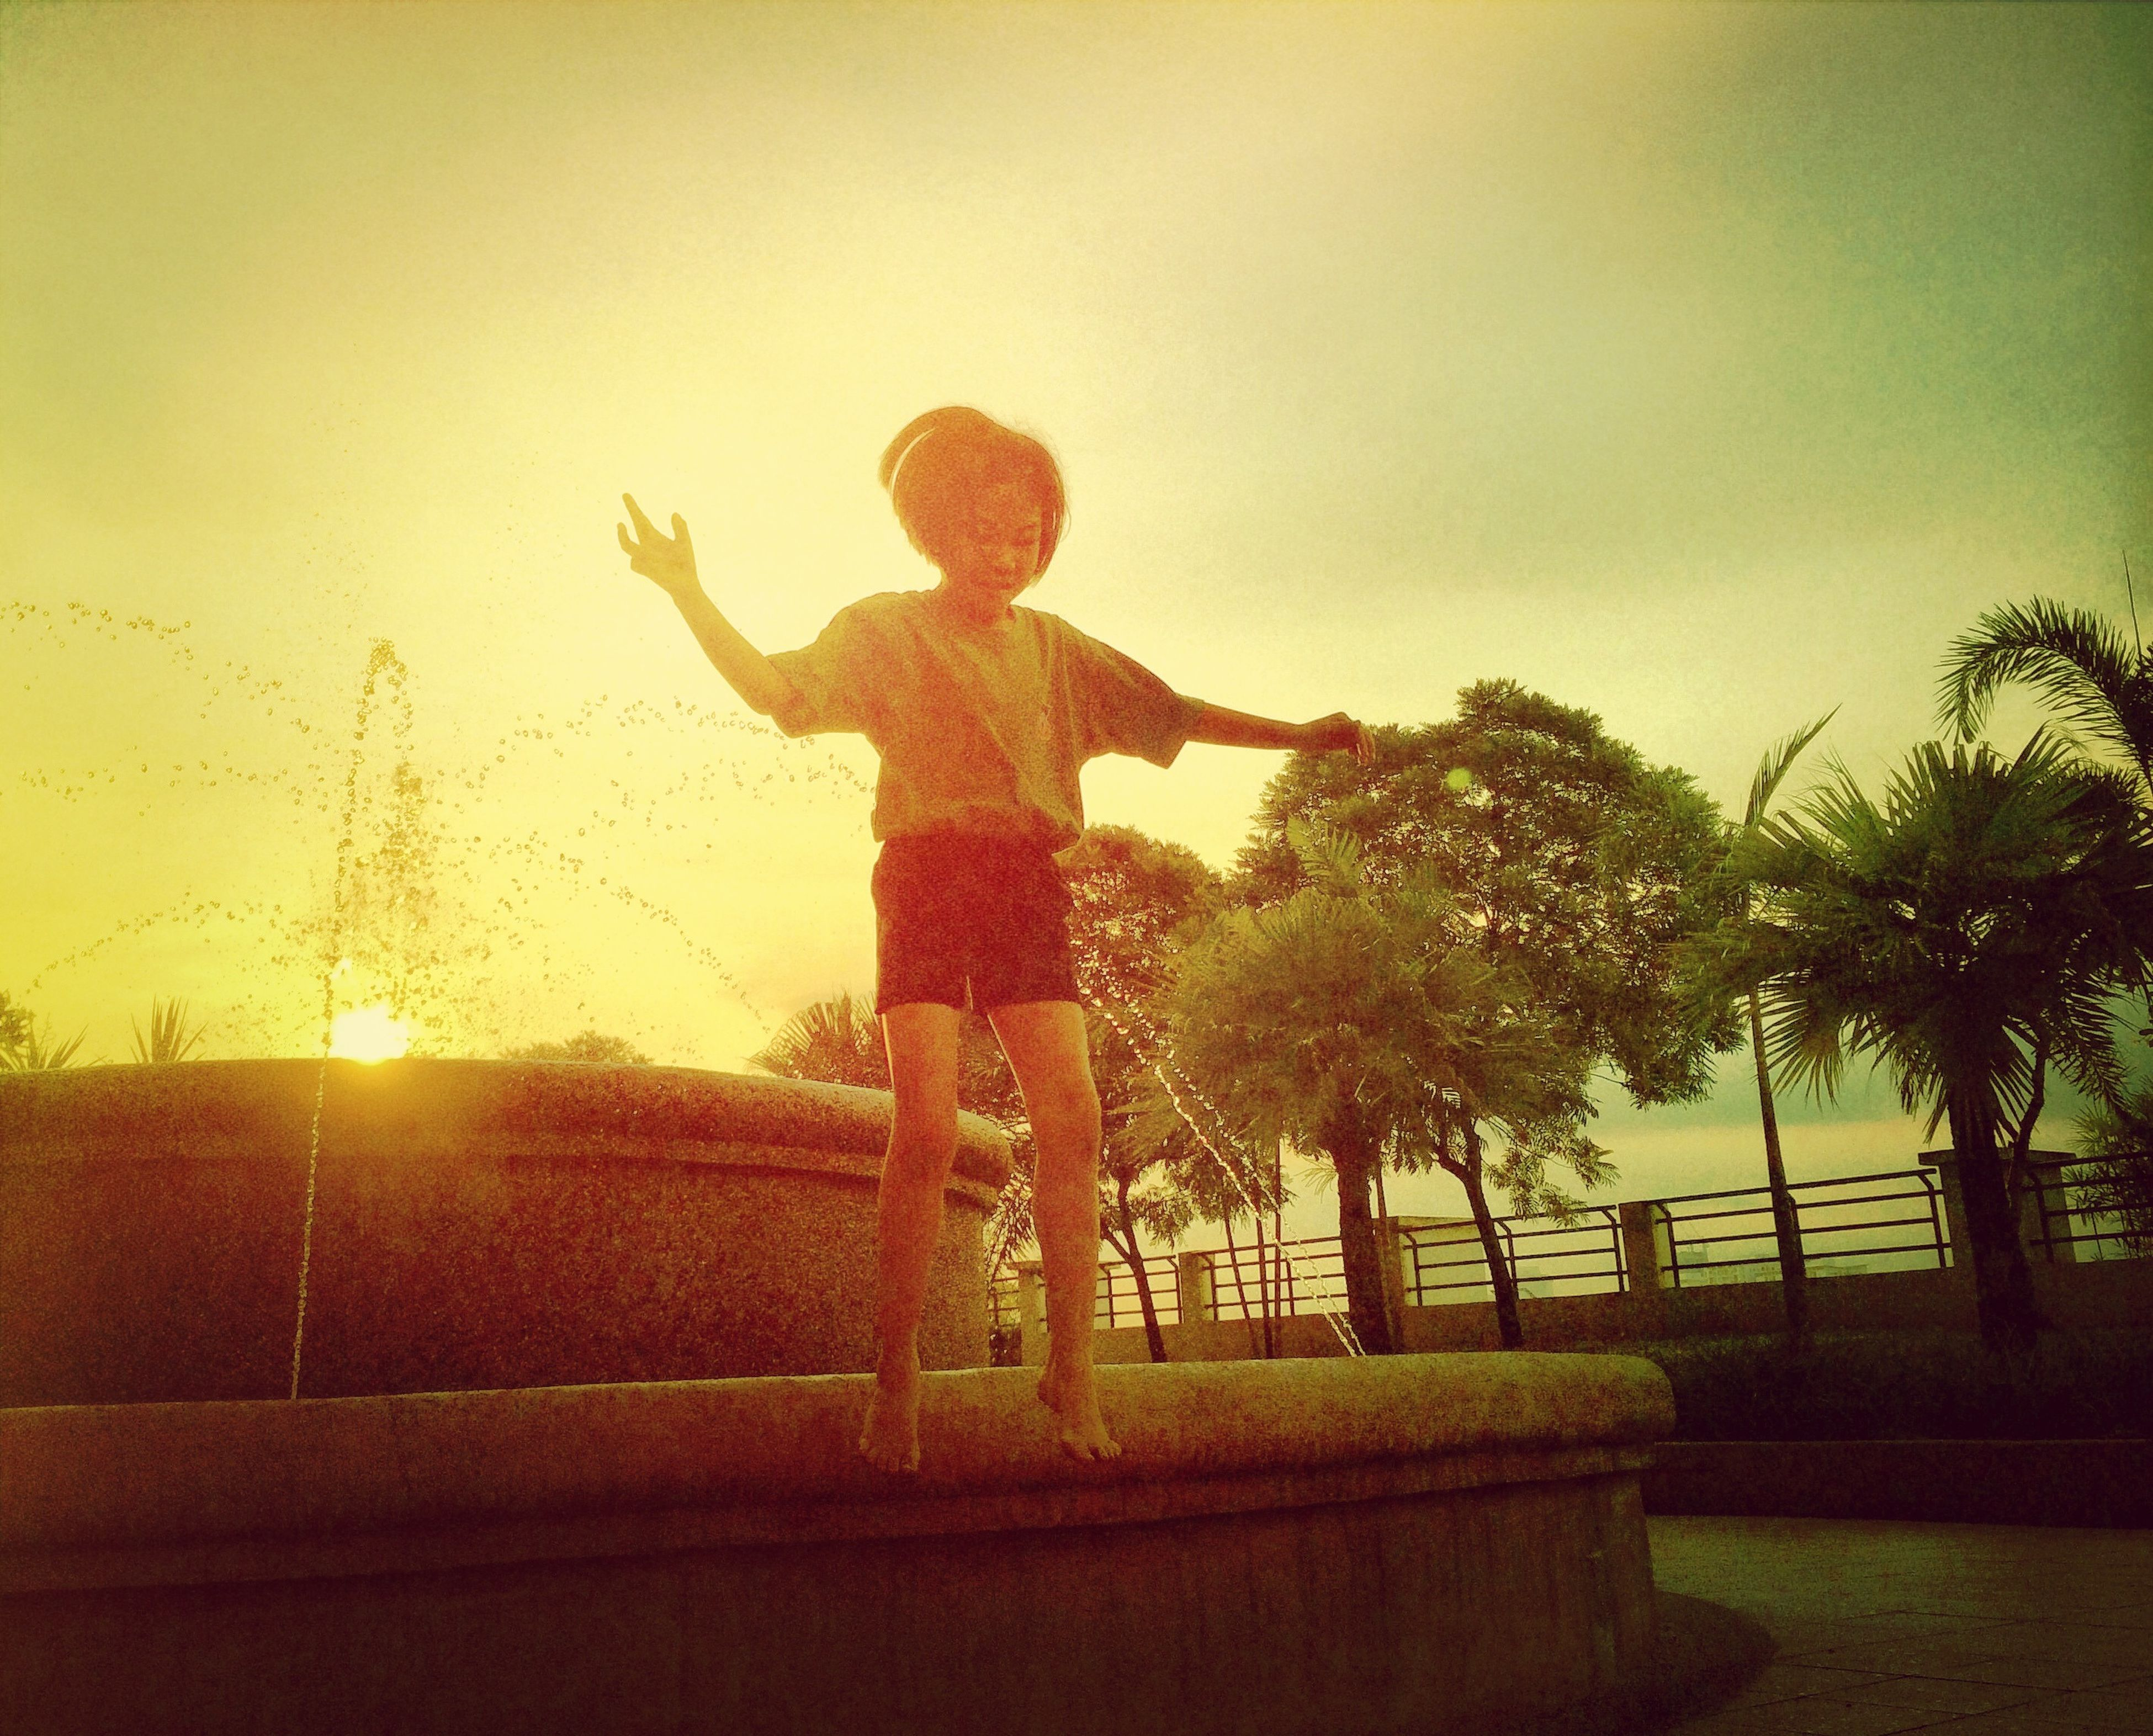 tree, sky, full length, leisure activity, lifestyles, childhood, sunset, silhouette, arms raised, mid-air, park - man made space, human representation, standing, playing, outdoors, jumping, sunlight, arms outstretched